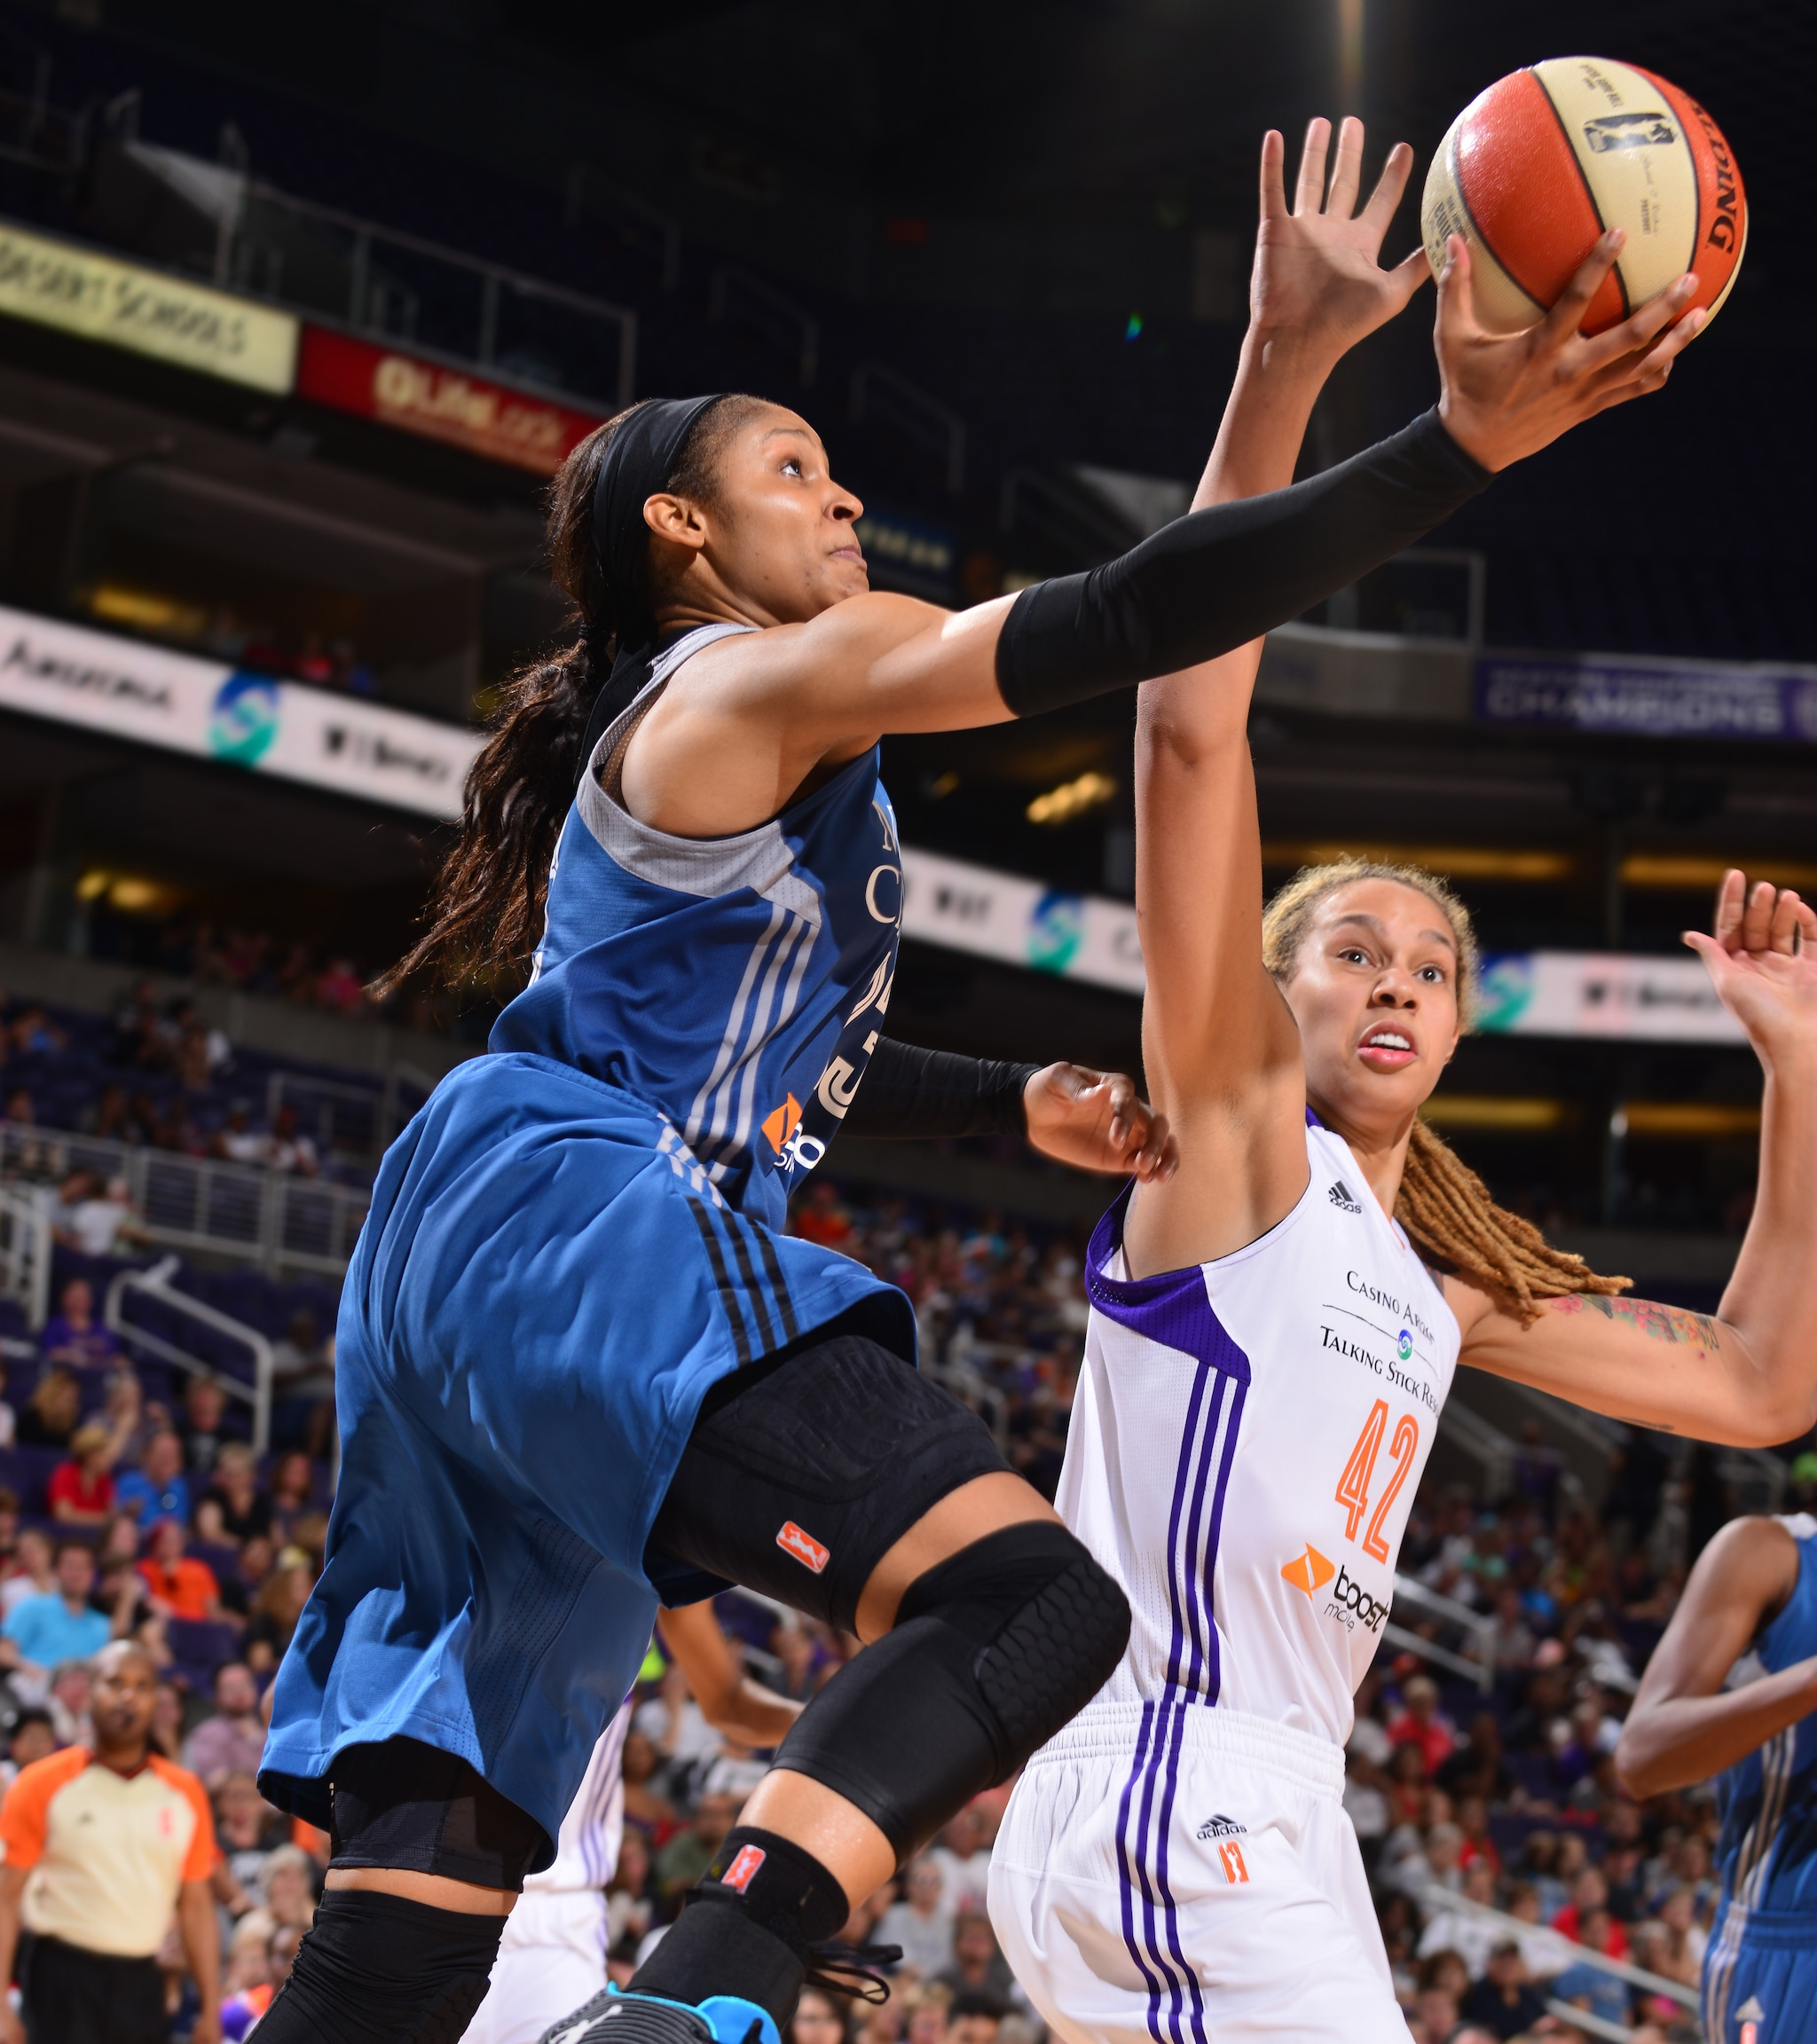 Lynx forward Maya Moore did her best to keep Minnesota in the game but struggled to find her shot, finishing with a team-high 17 points on 5-of-17 (29 percent) shooting. Moore also added four rebounds and two blocked shots in the loss.